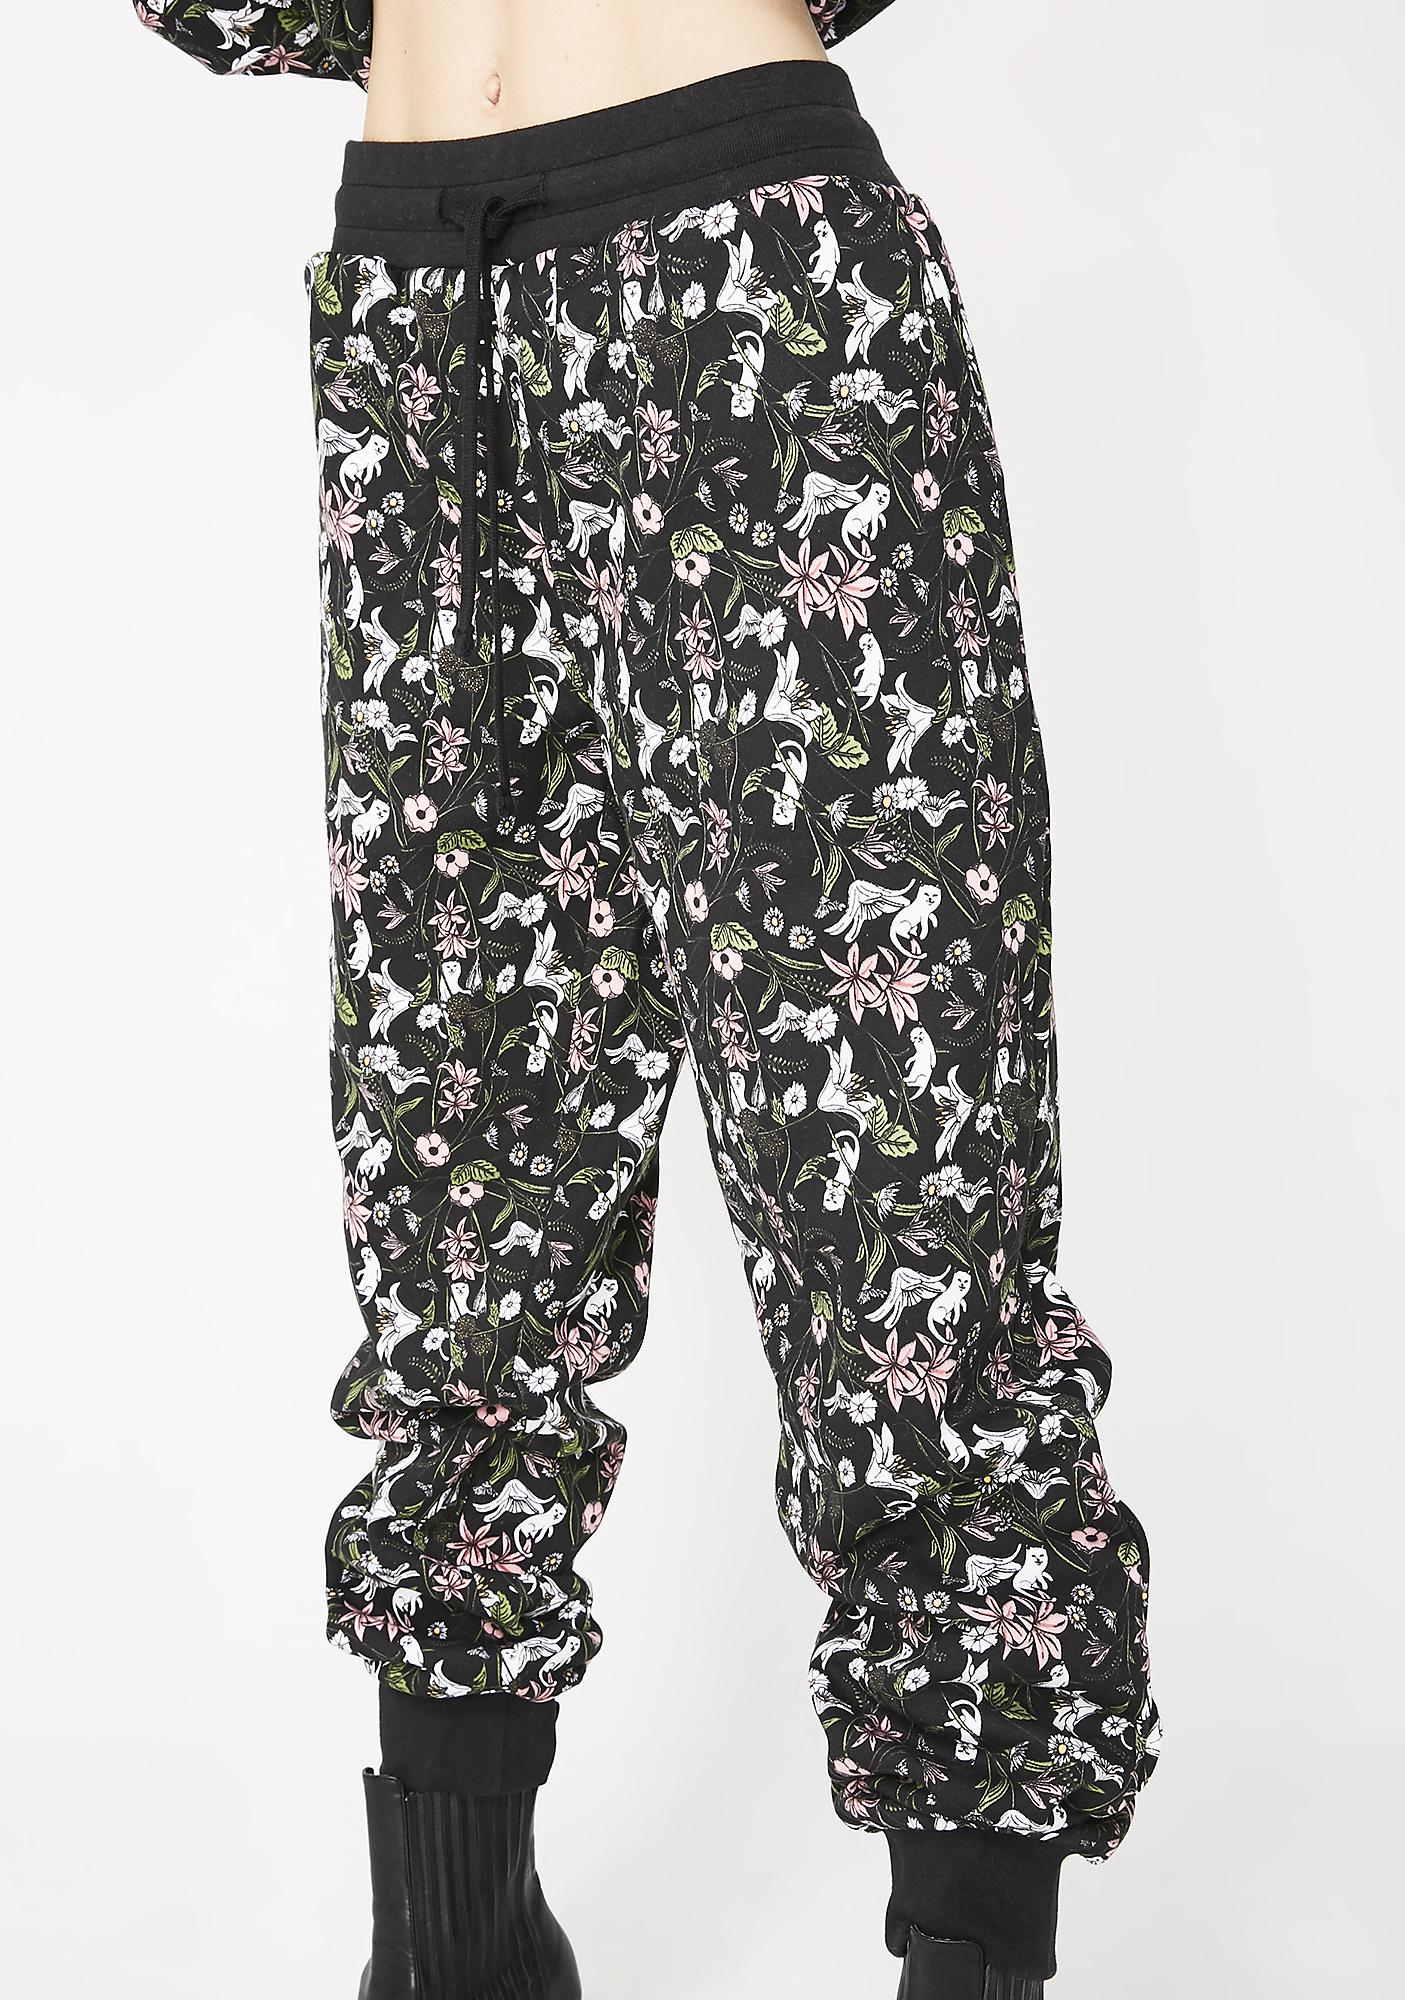 RIPNDIP Black Floral Sweatpants